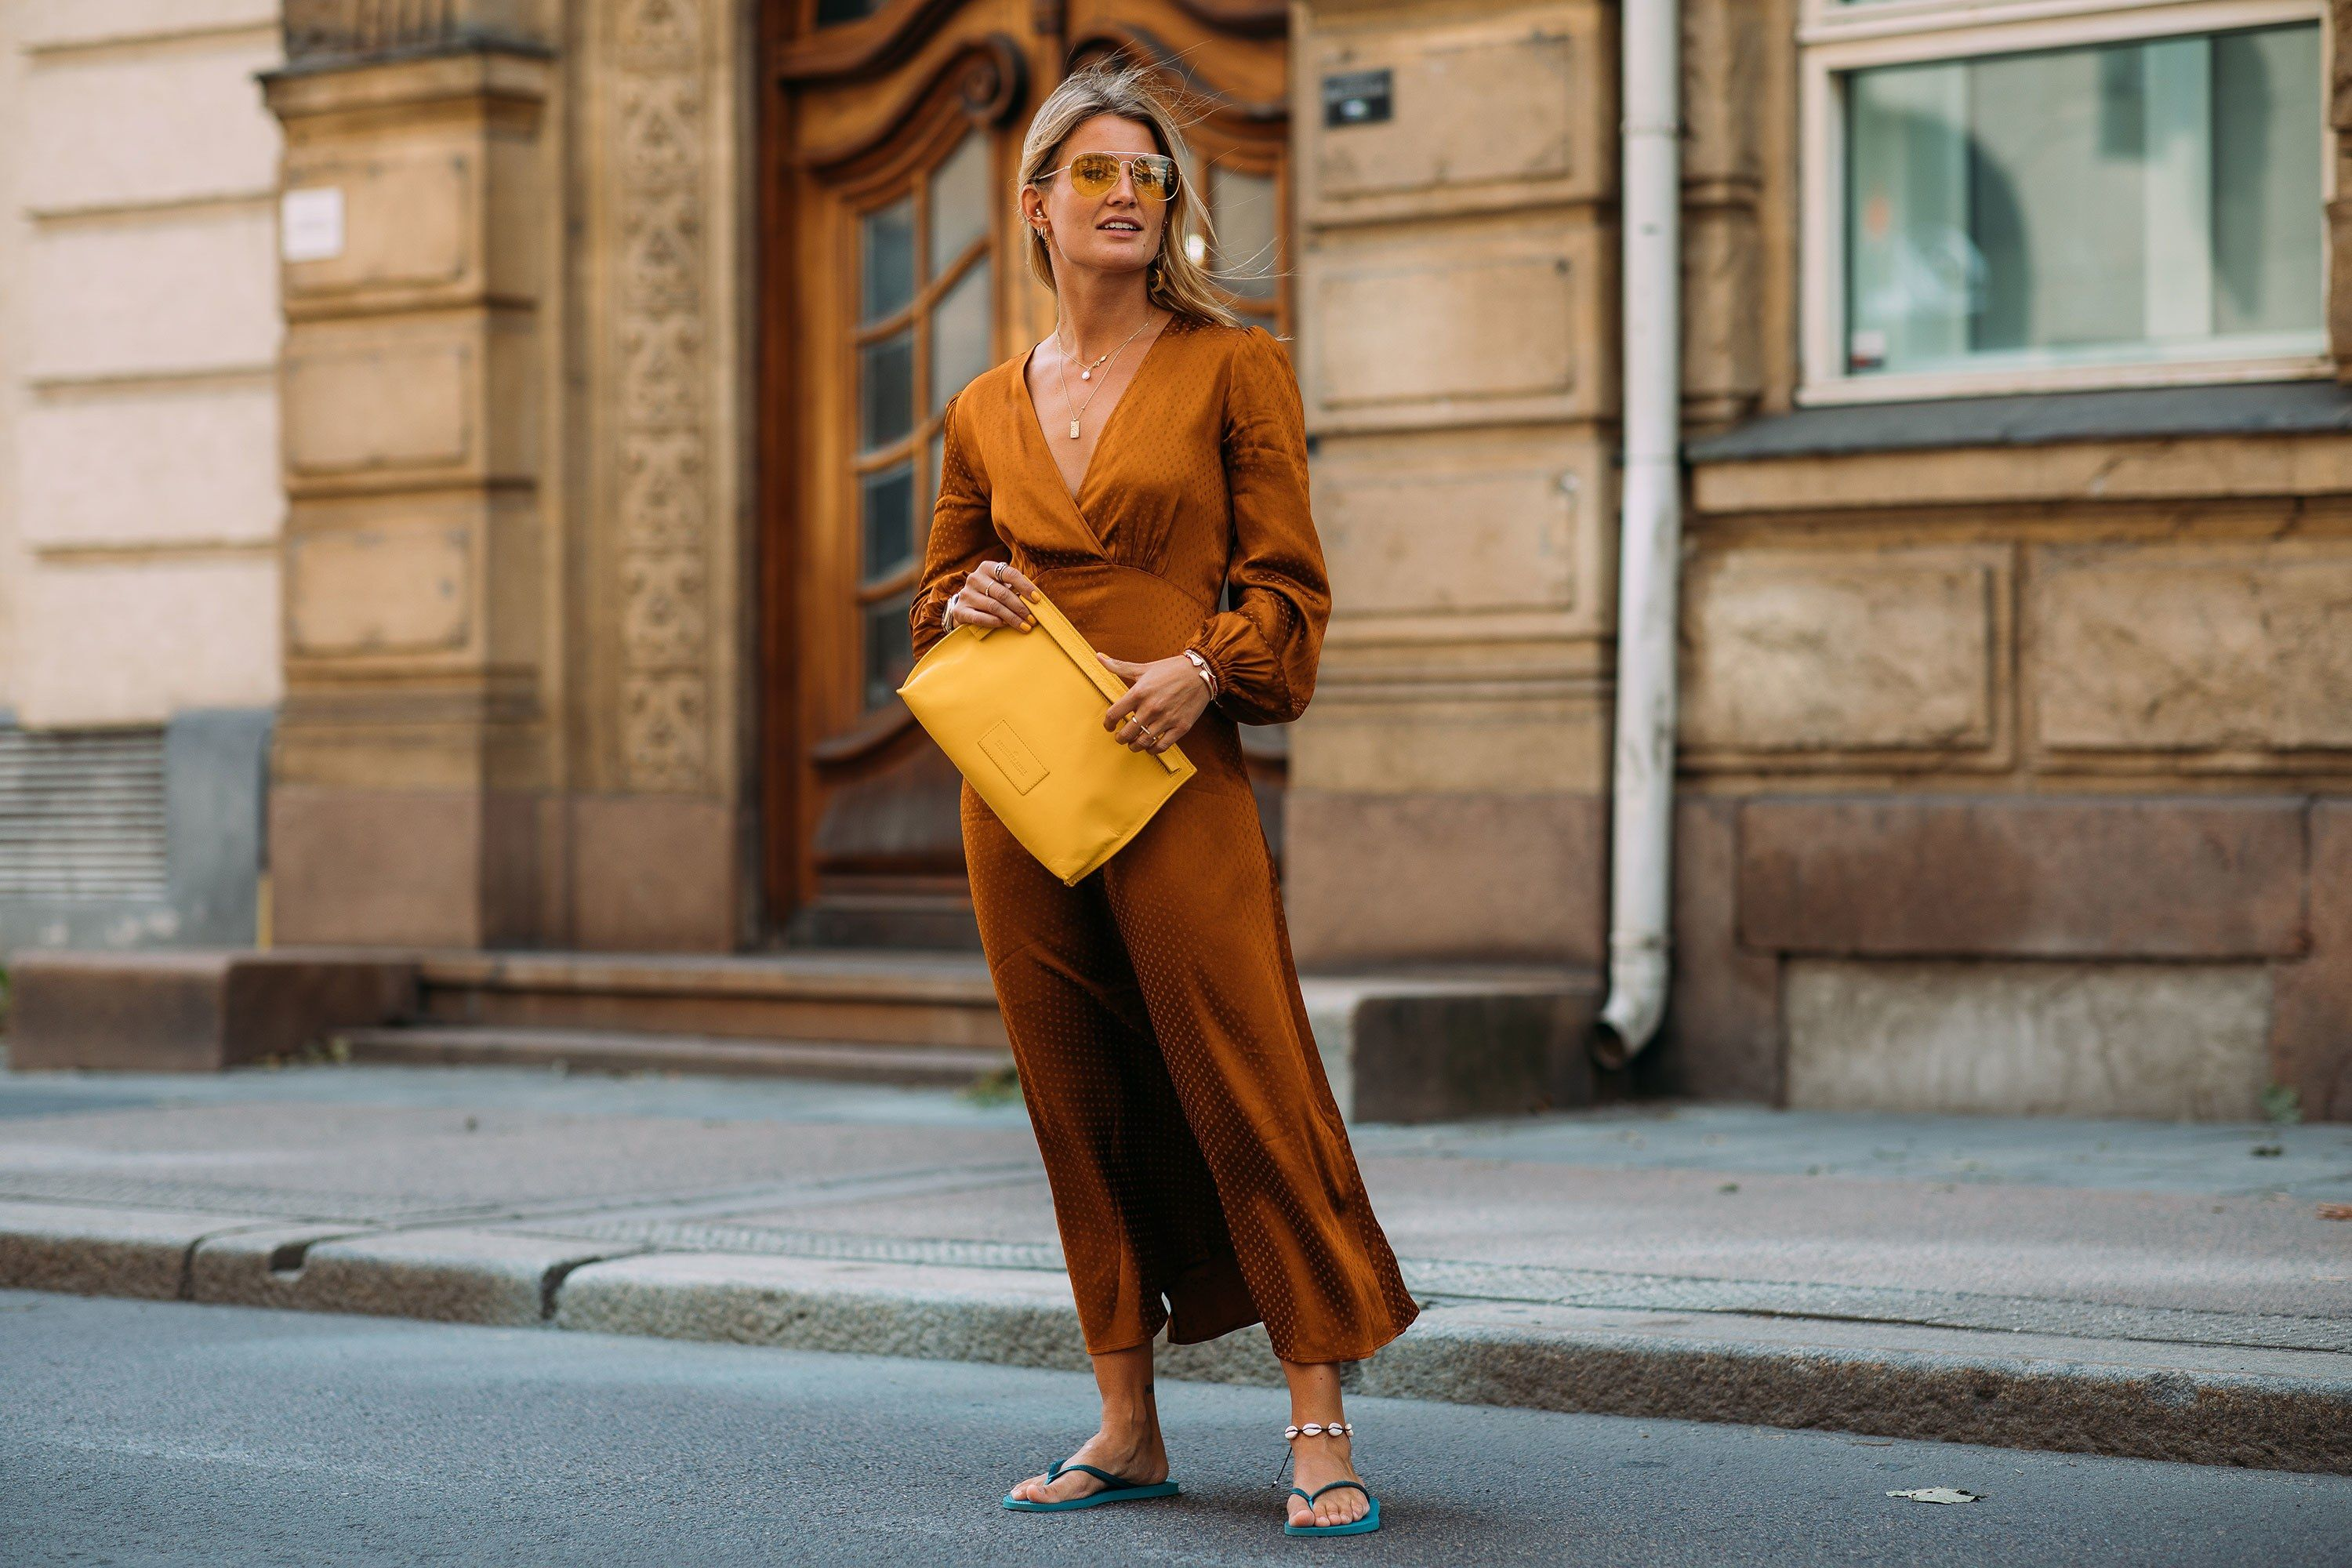 a4d7faaa The Best Street Style at Oslo Fashion Week Spring 2019 | dressed ...